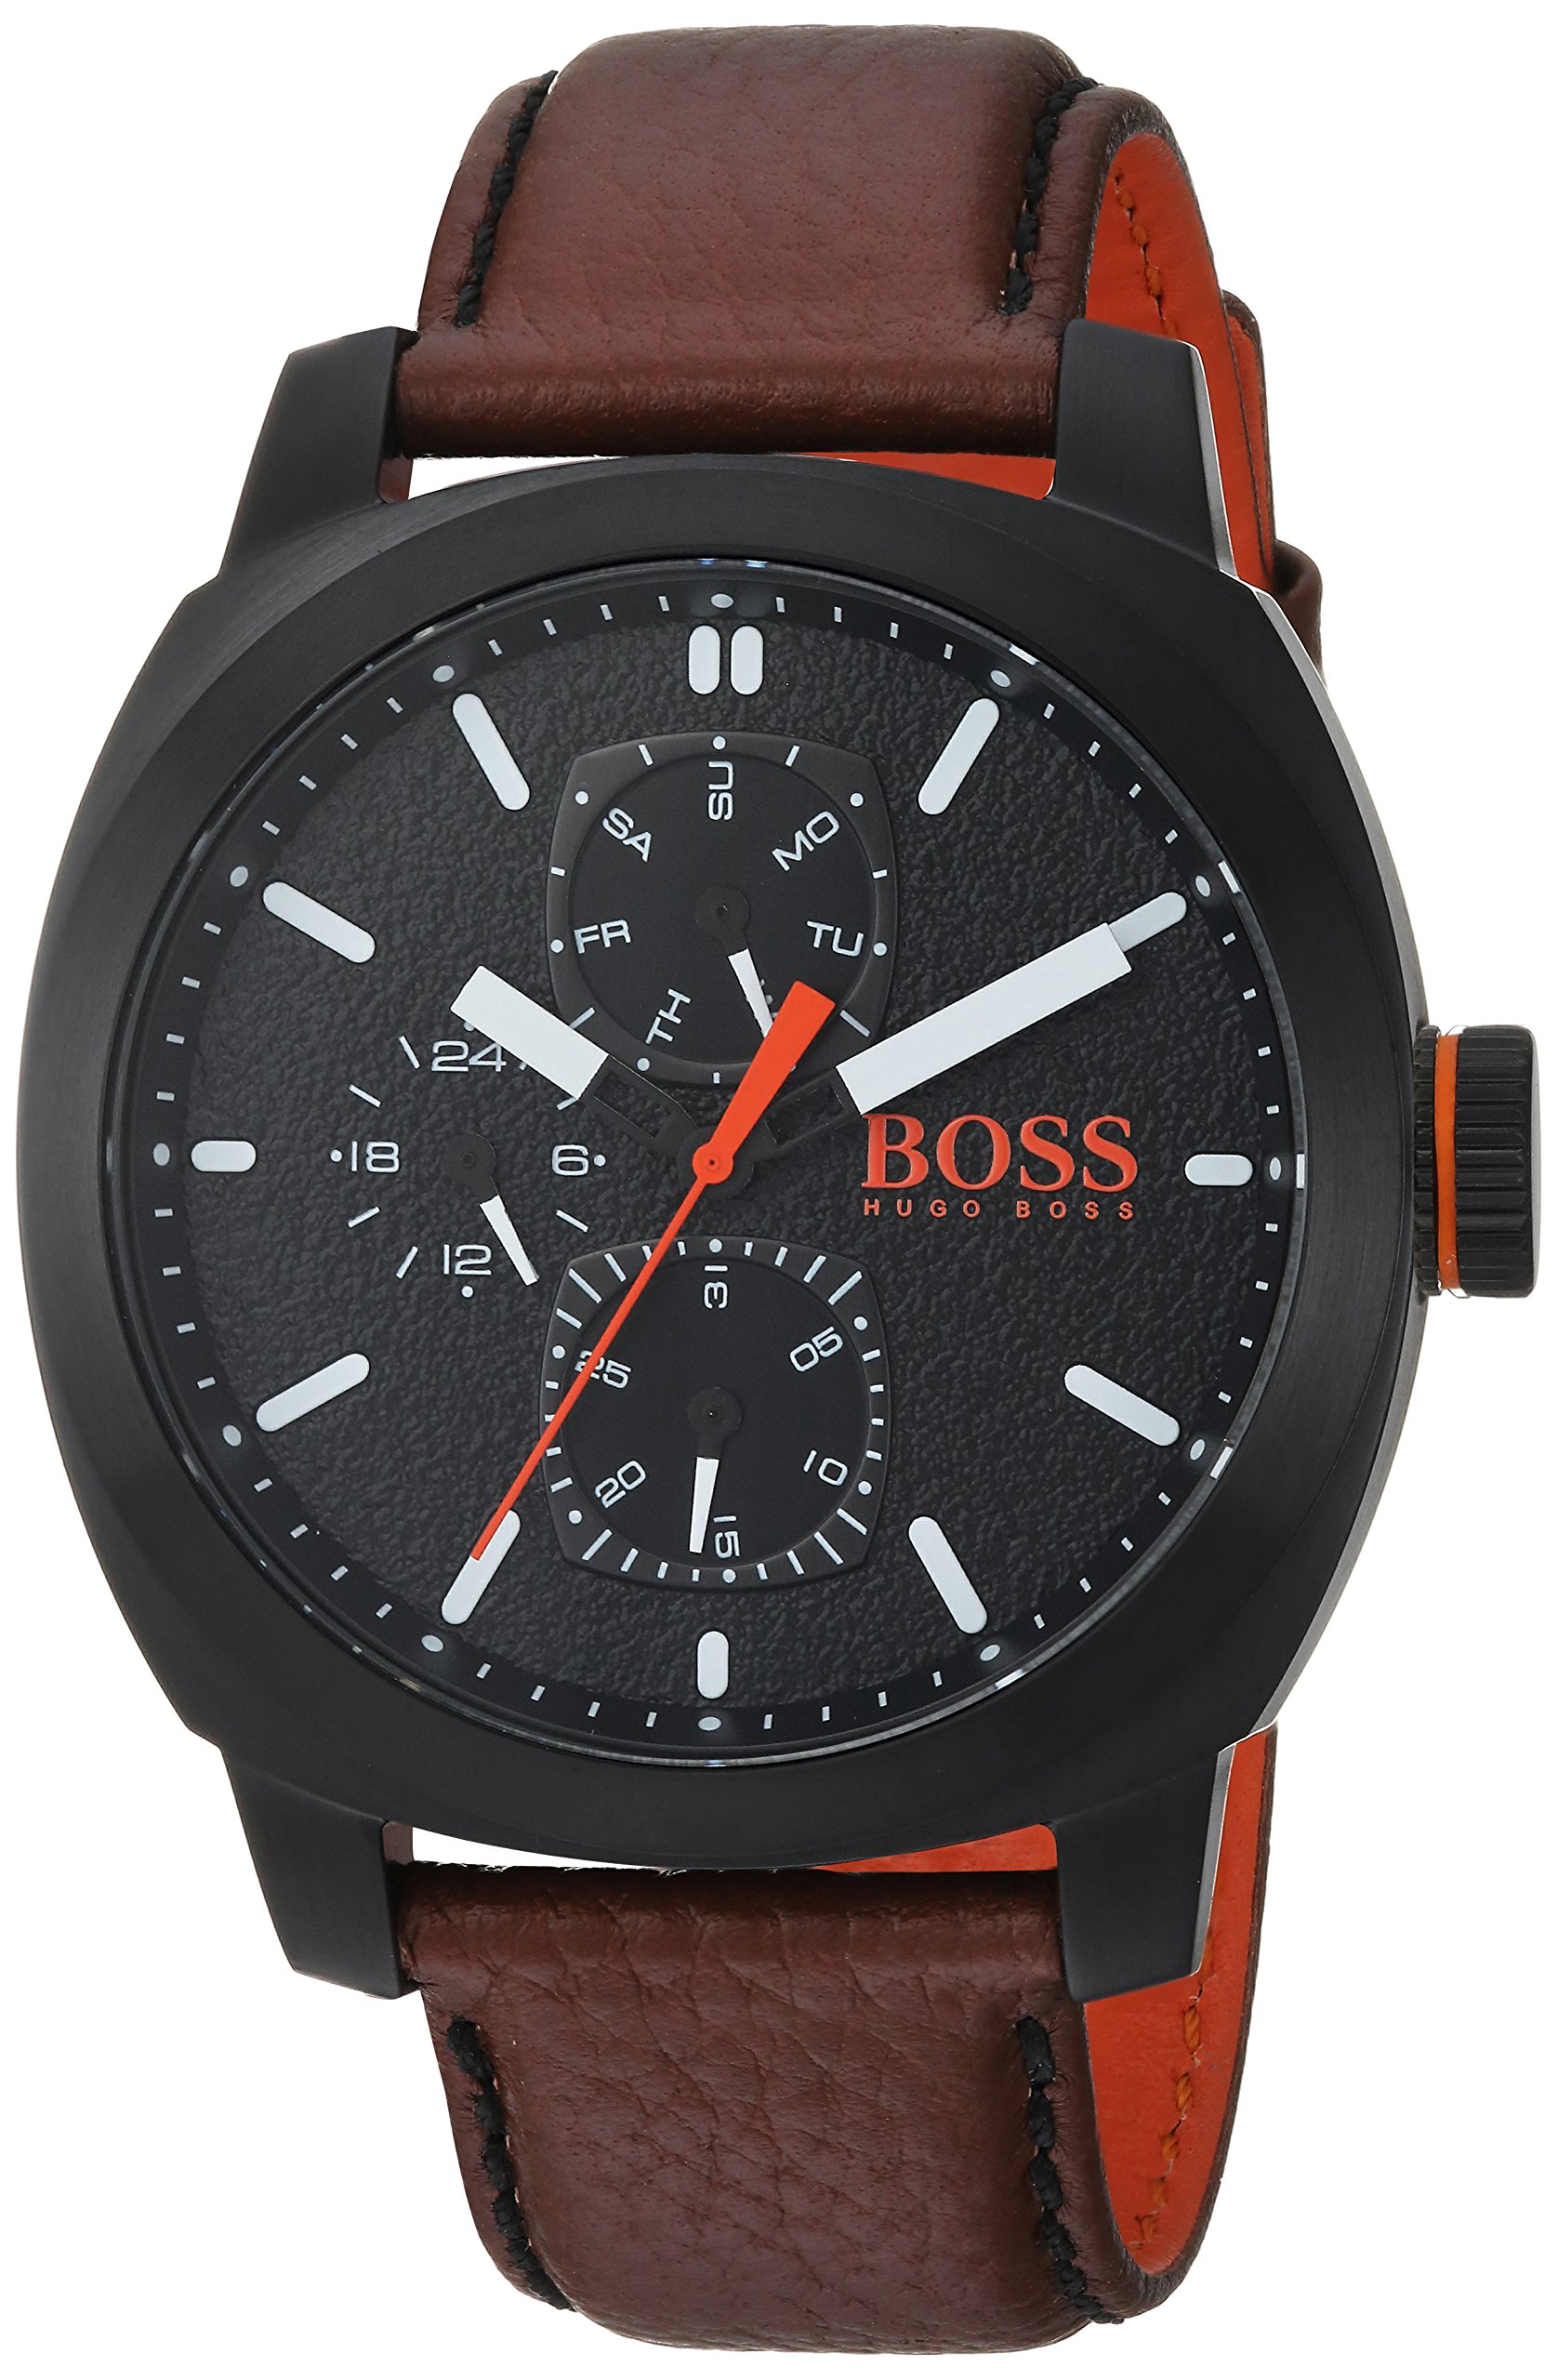 HUGO BOSS Men's Cape Town Stainless Steel Quartz Watch with Leather Strap, Brown, 22 (Model: 1550028) by Hugo Boss